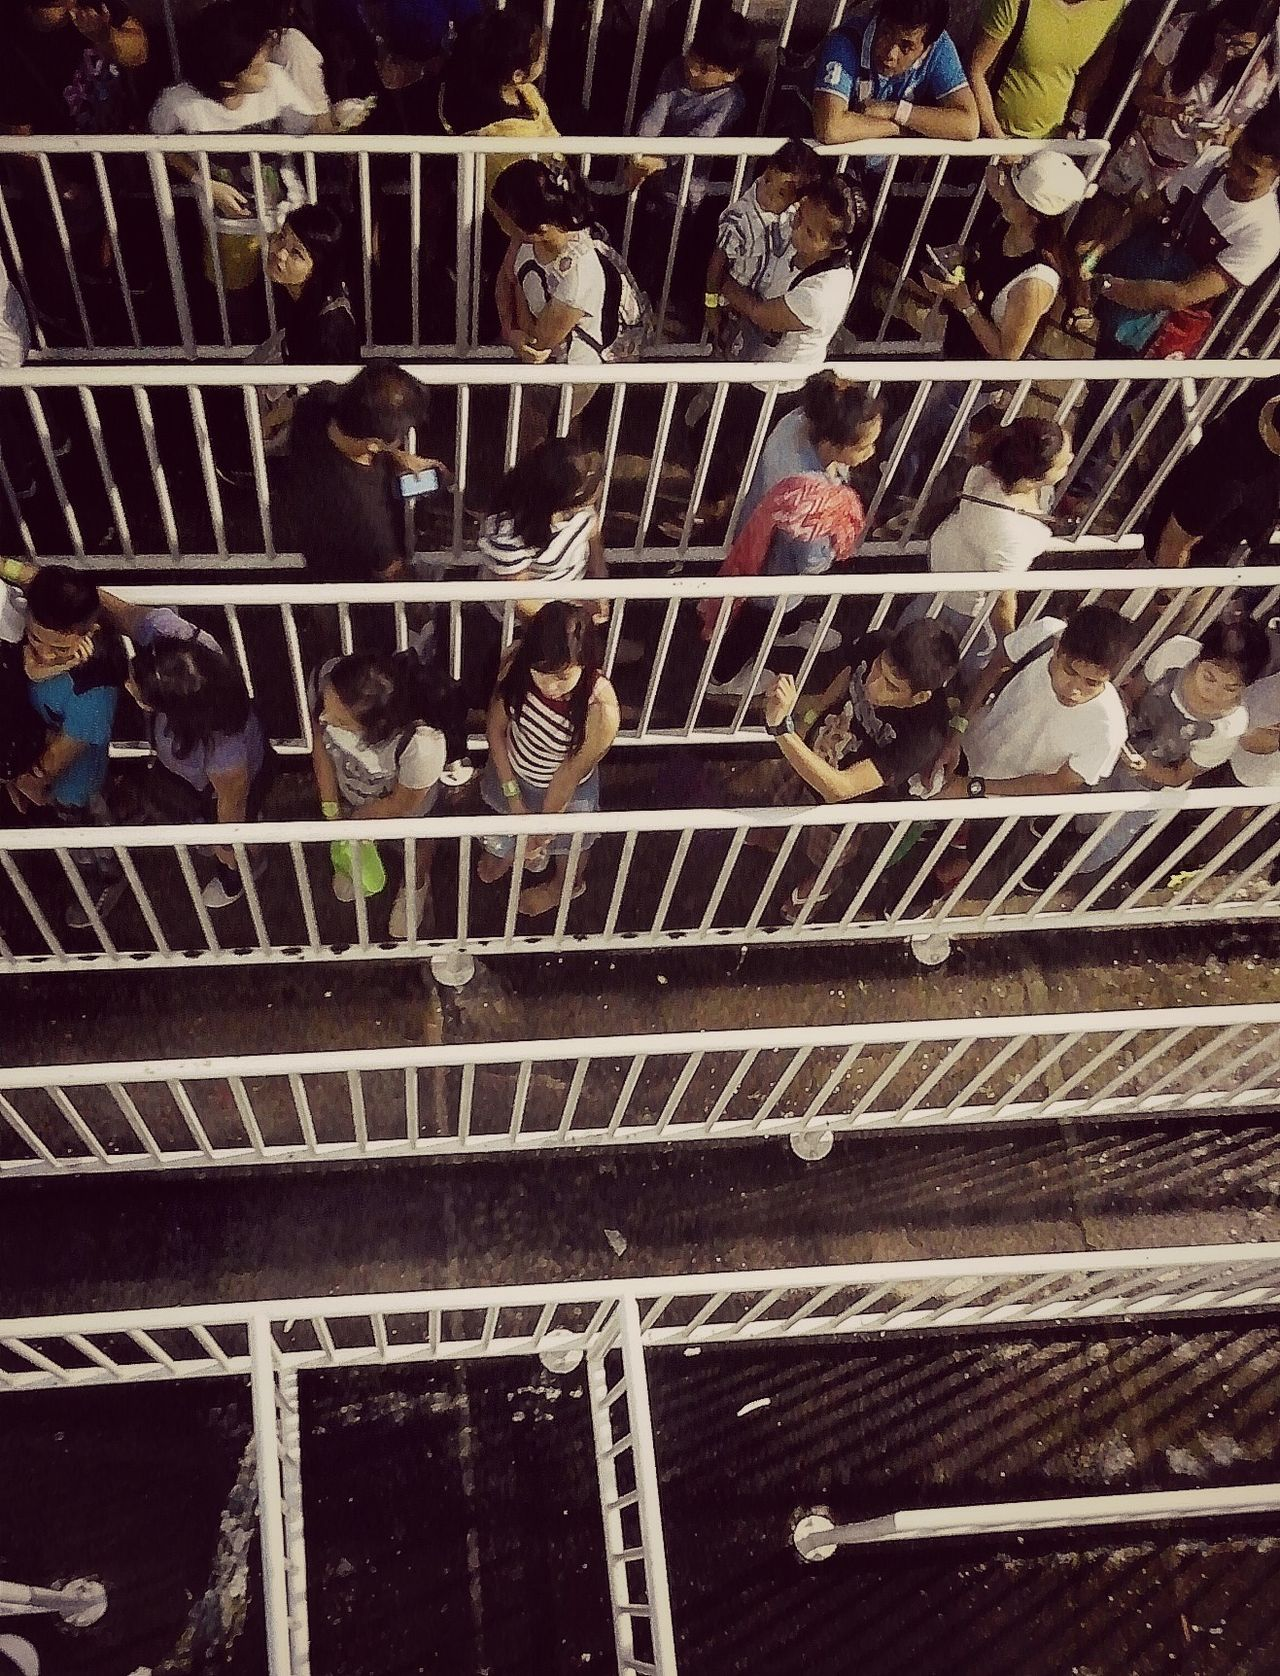 Eyeem Philippines Half Full, Half Empty LINE Men Messy Opposite Directions People Are People People Around You Peoplephotography Shadows & Lights Top View Waiting For The Rain Waiting In Line White Gate Women The Street Photographer - 2017 EyeEm Awards